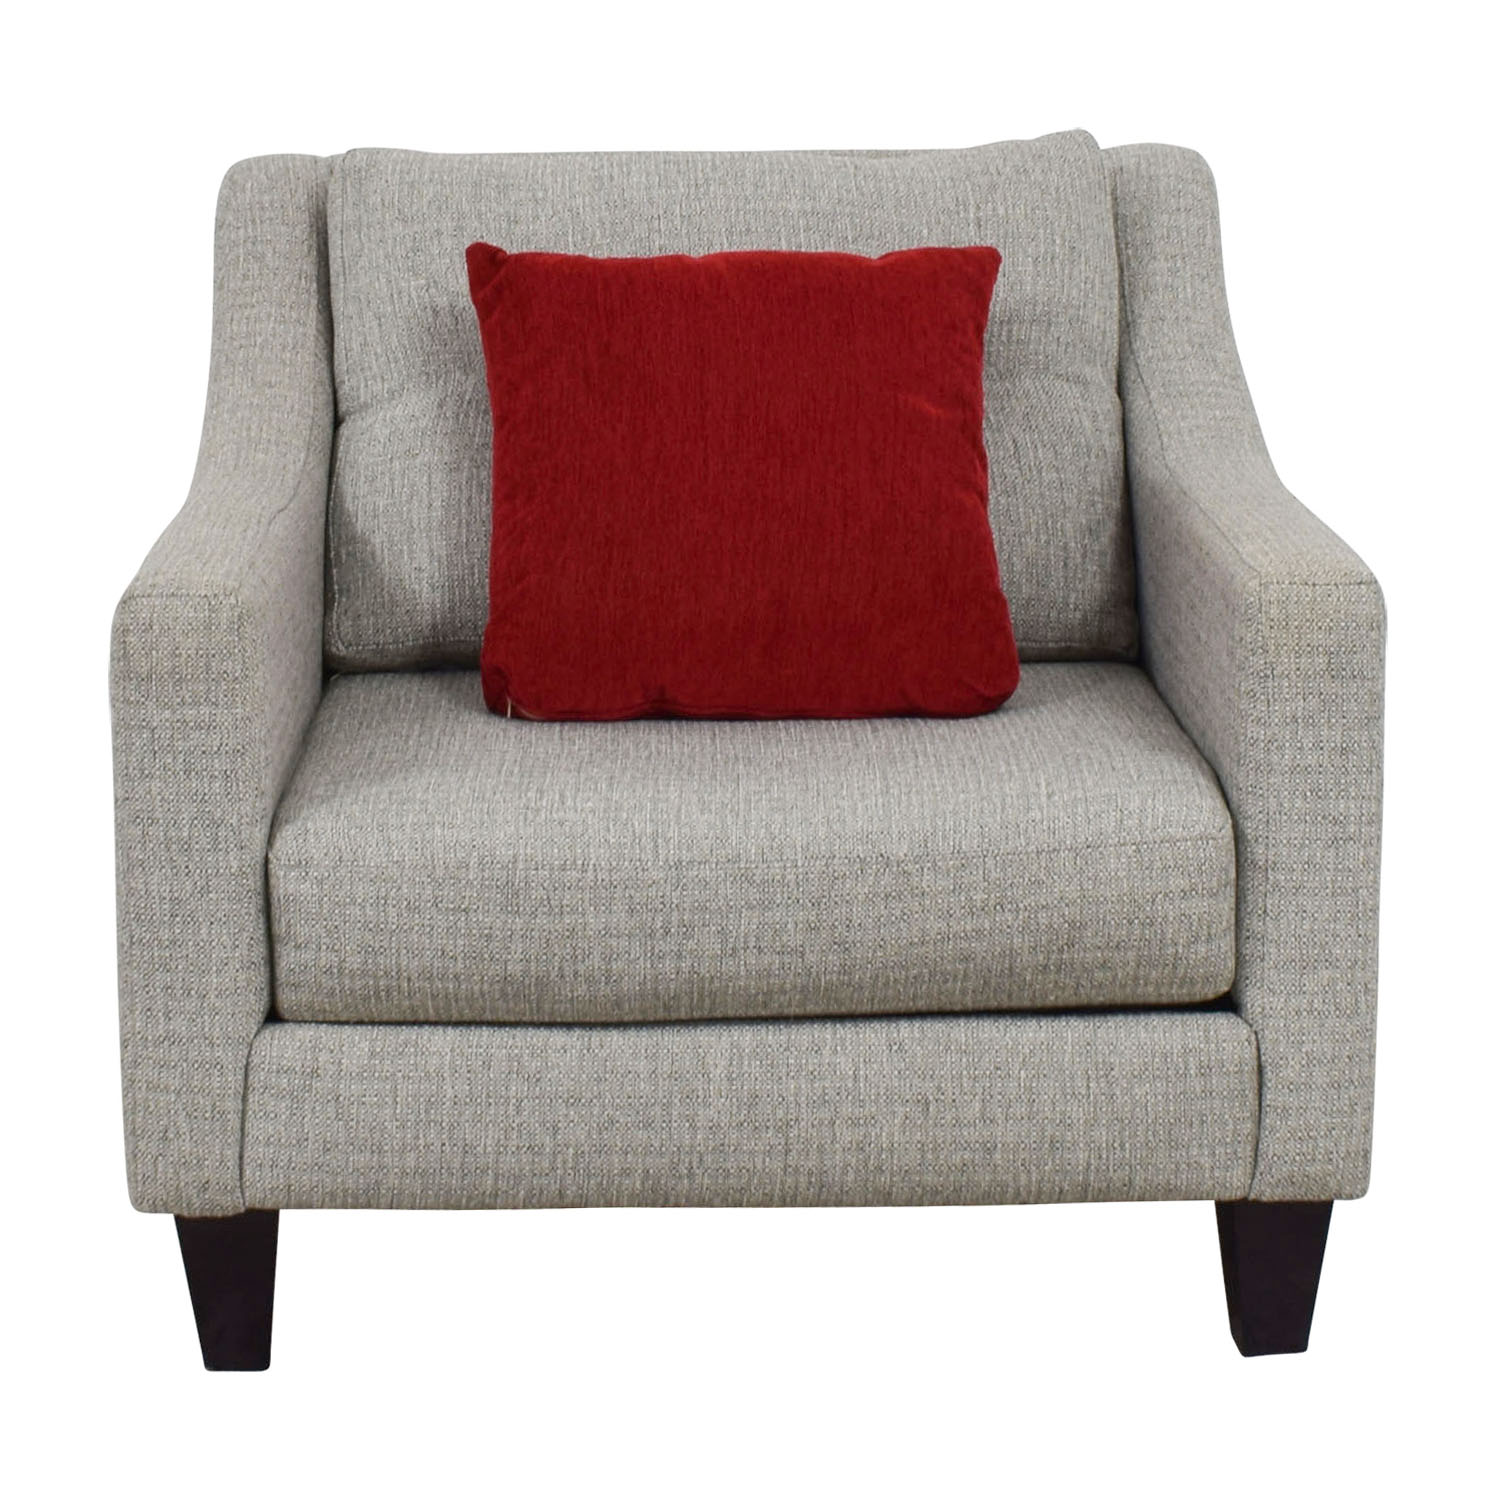 buy Raymour & Flanigan Modern Gray Armchair Raymour & Flanigan Accent Chairs